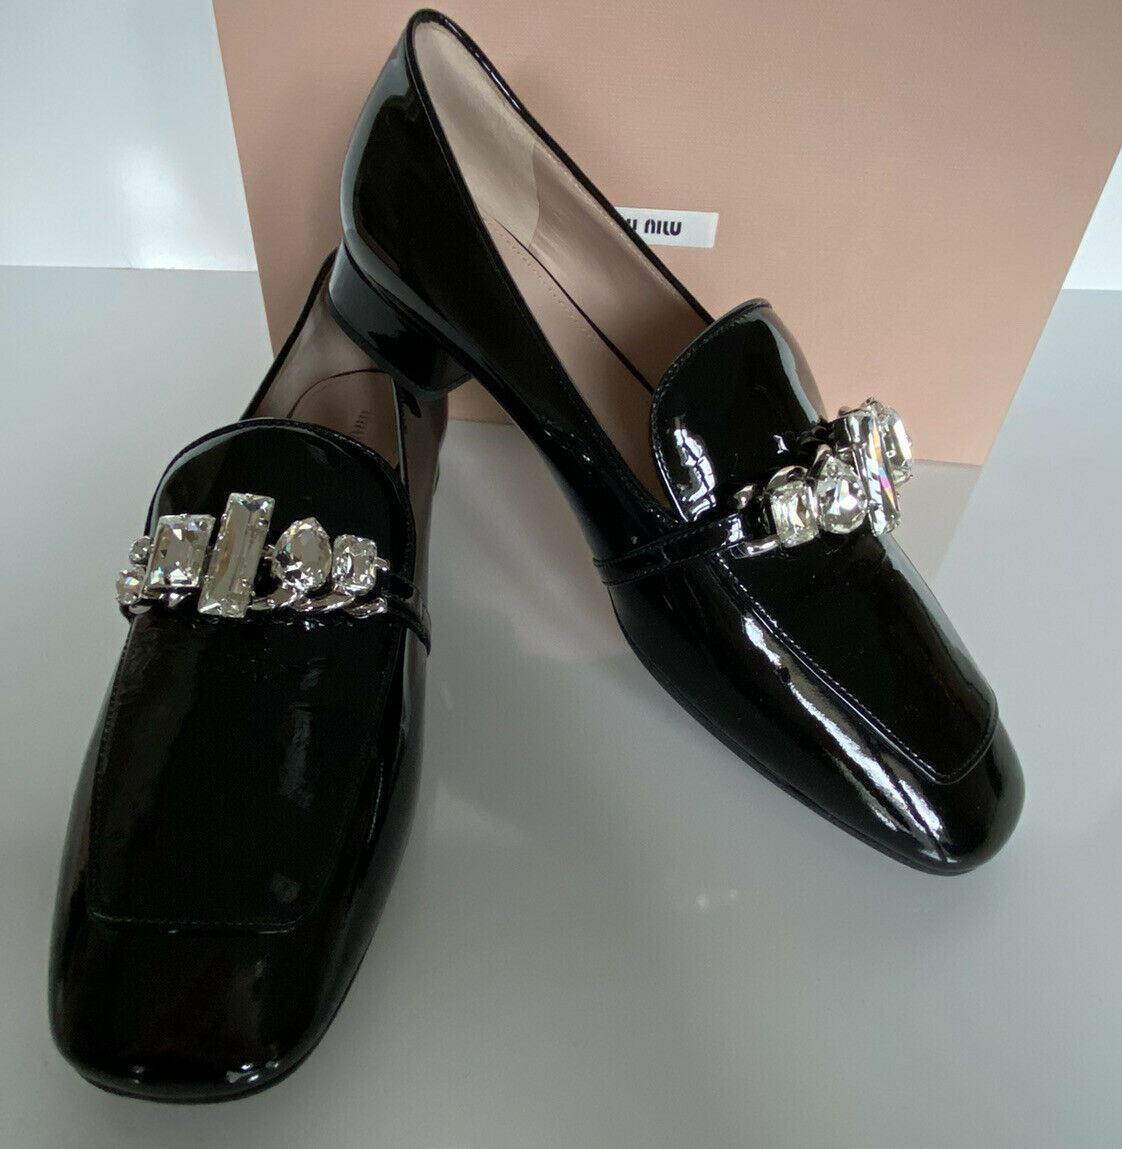 NIB PRADA Miu Miu Women's Black Leather Jeweled Loafers 37 5d224C Made in Italy